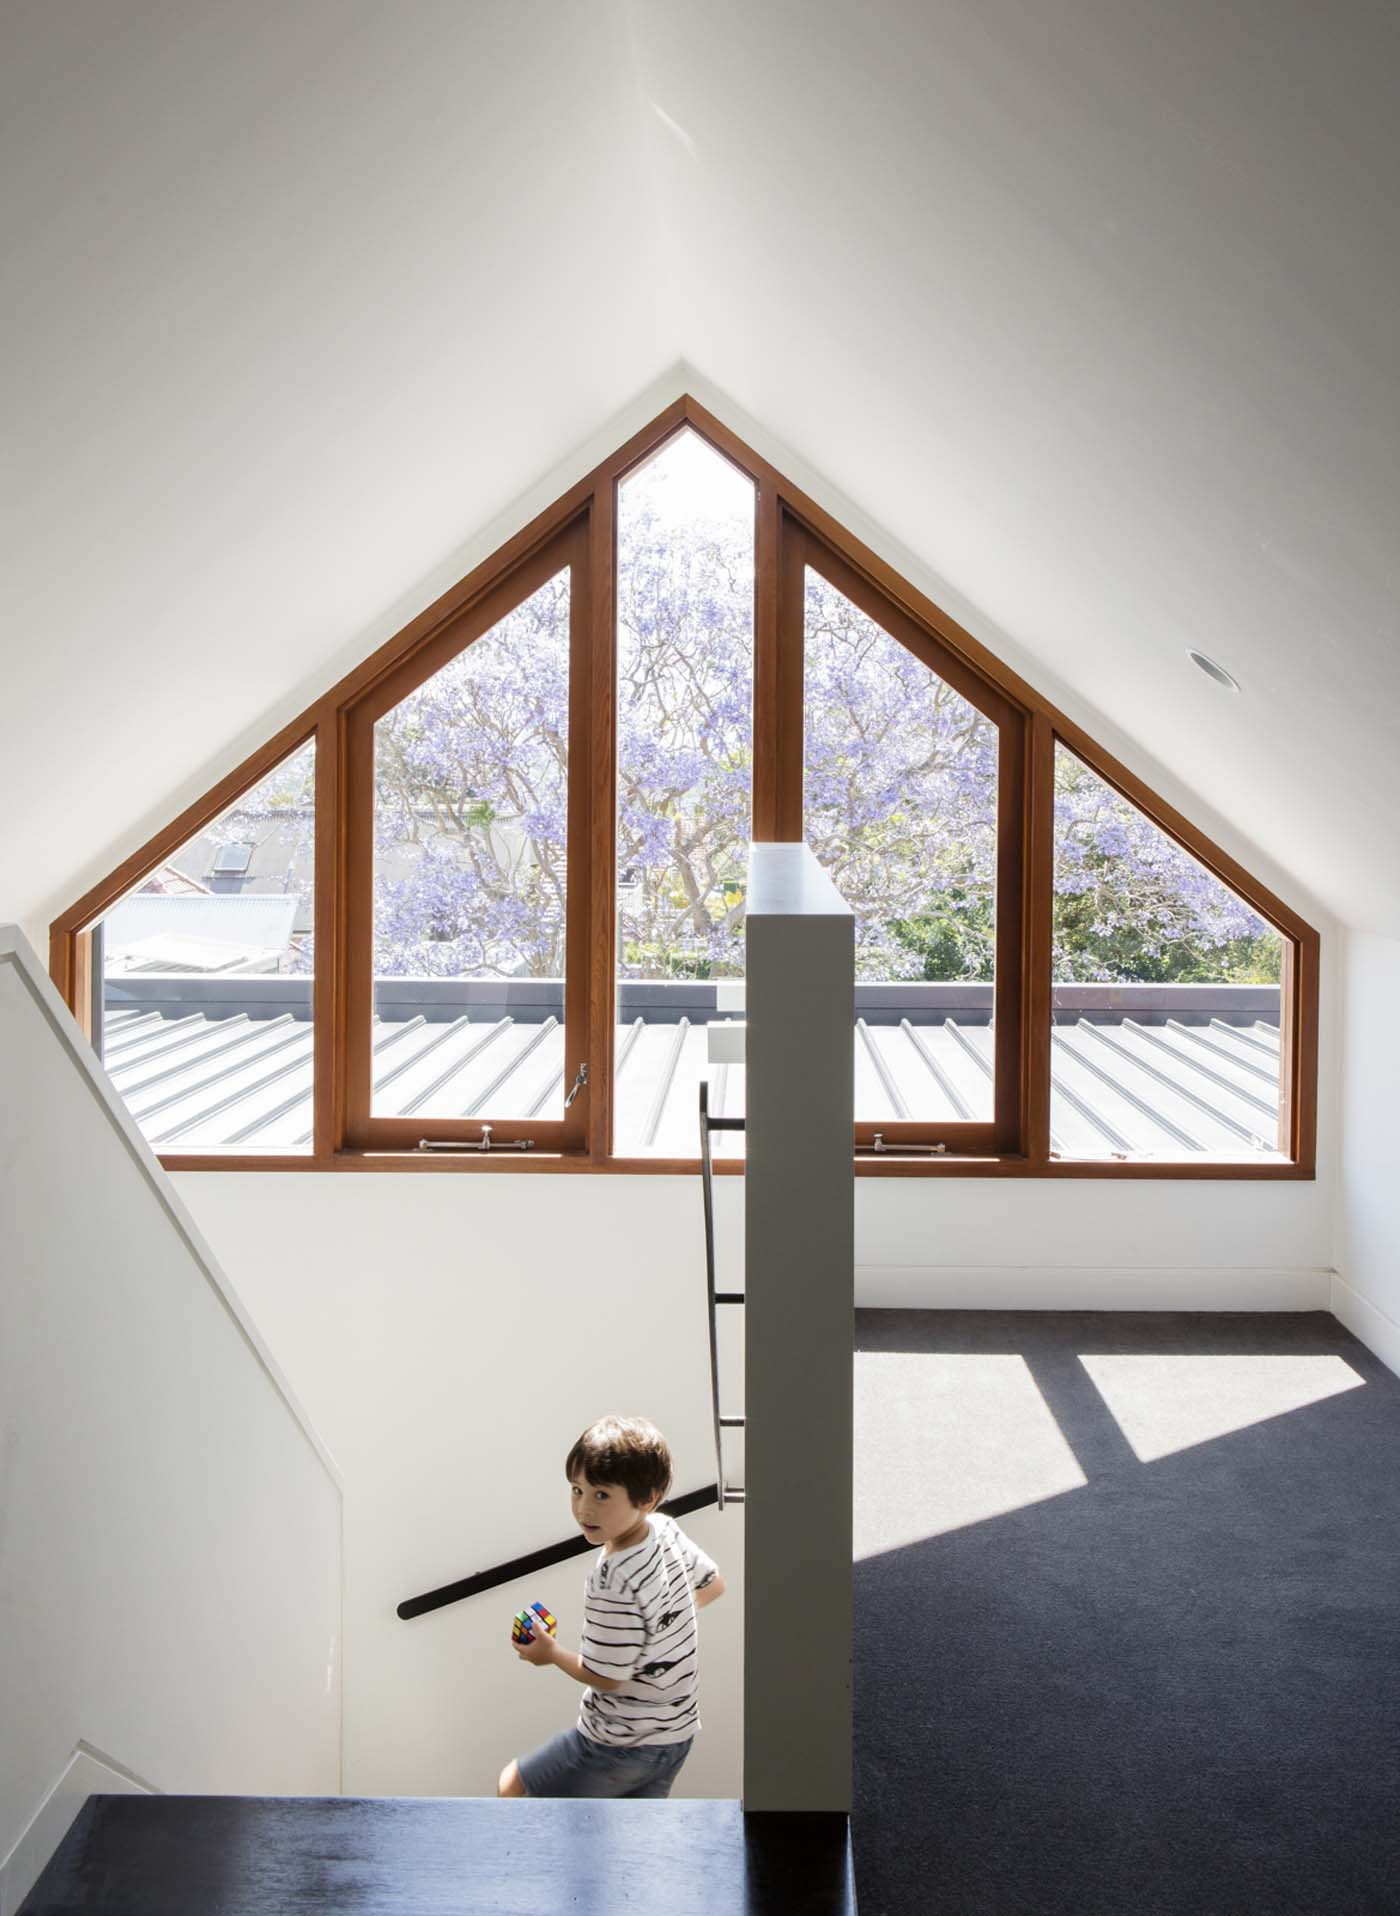 Sung Dobson house by Sam Crawford Architects, Sydney. Natural light in upstairs area.